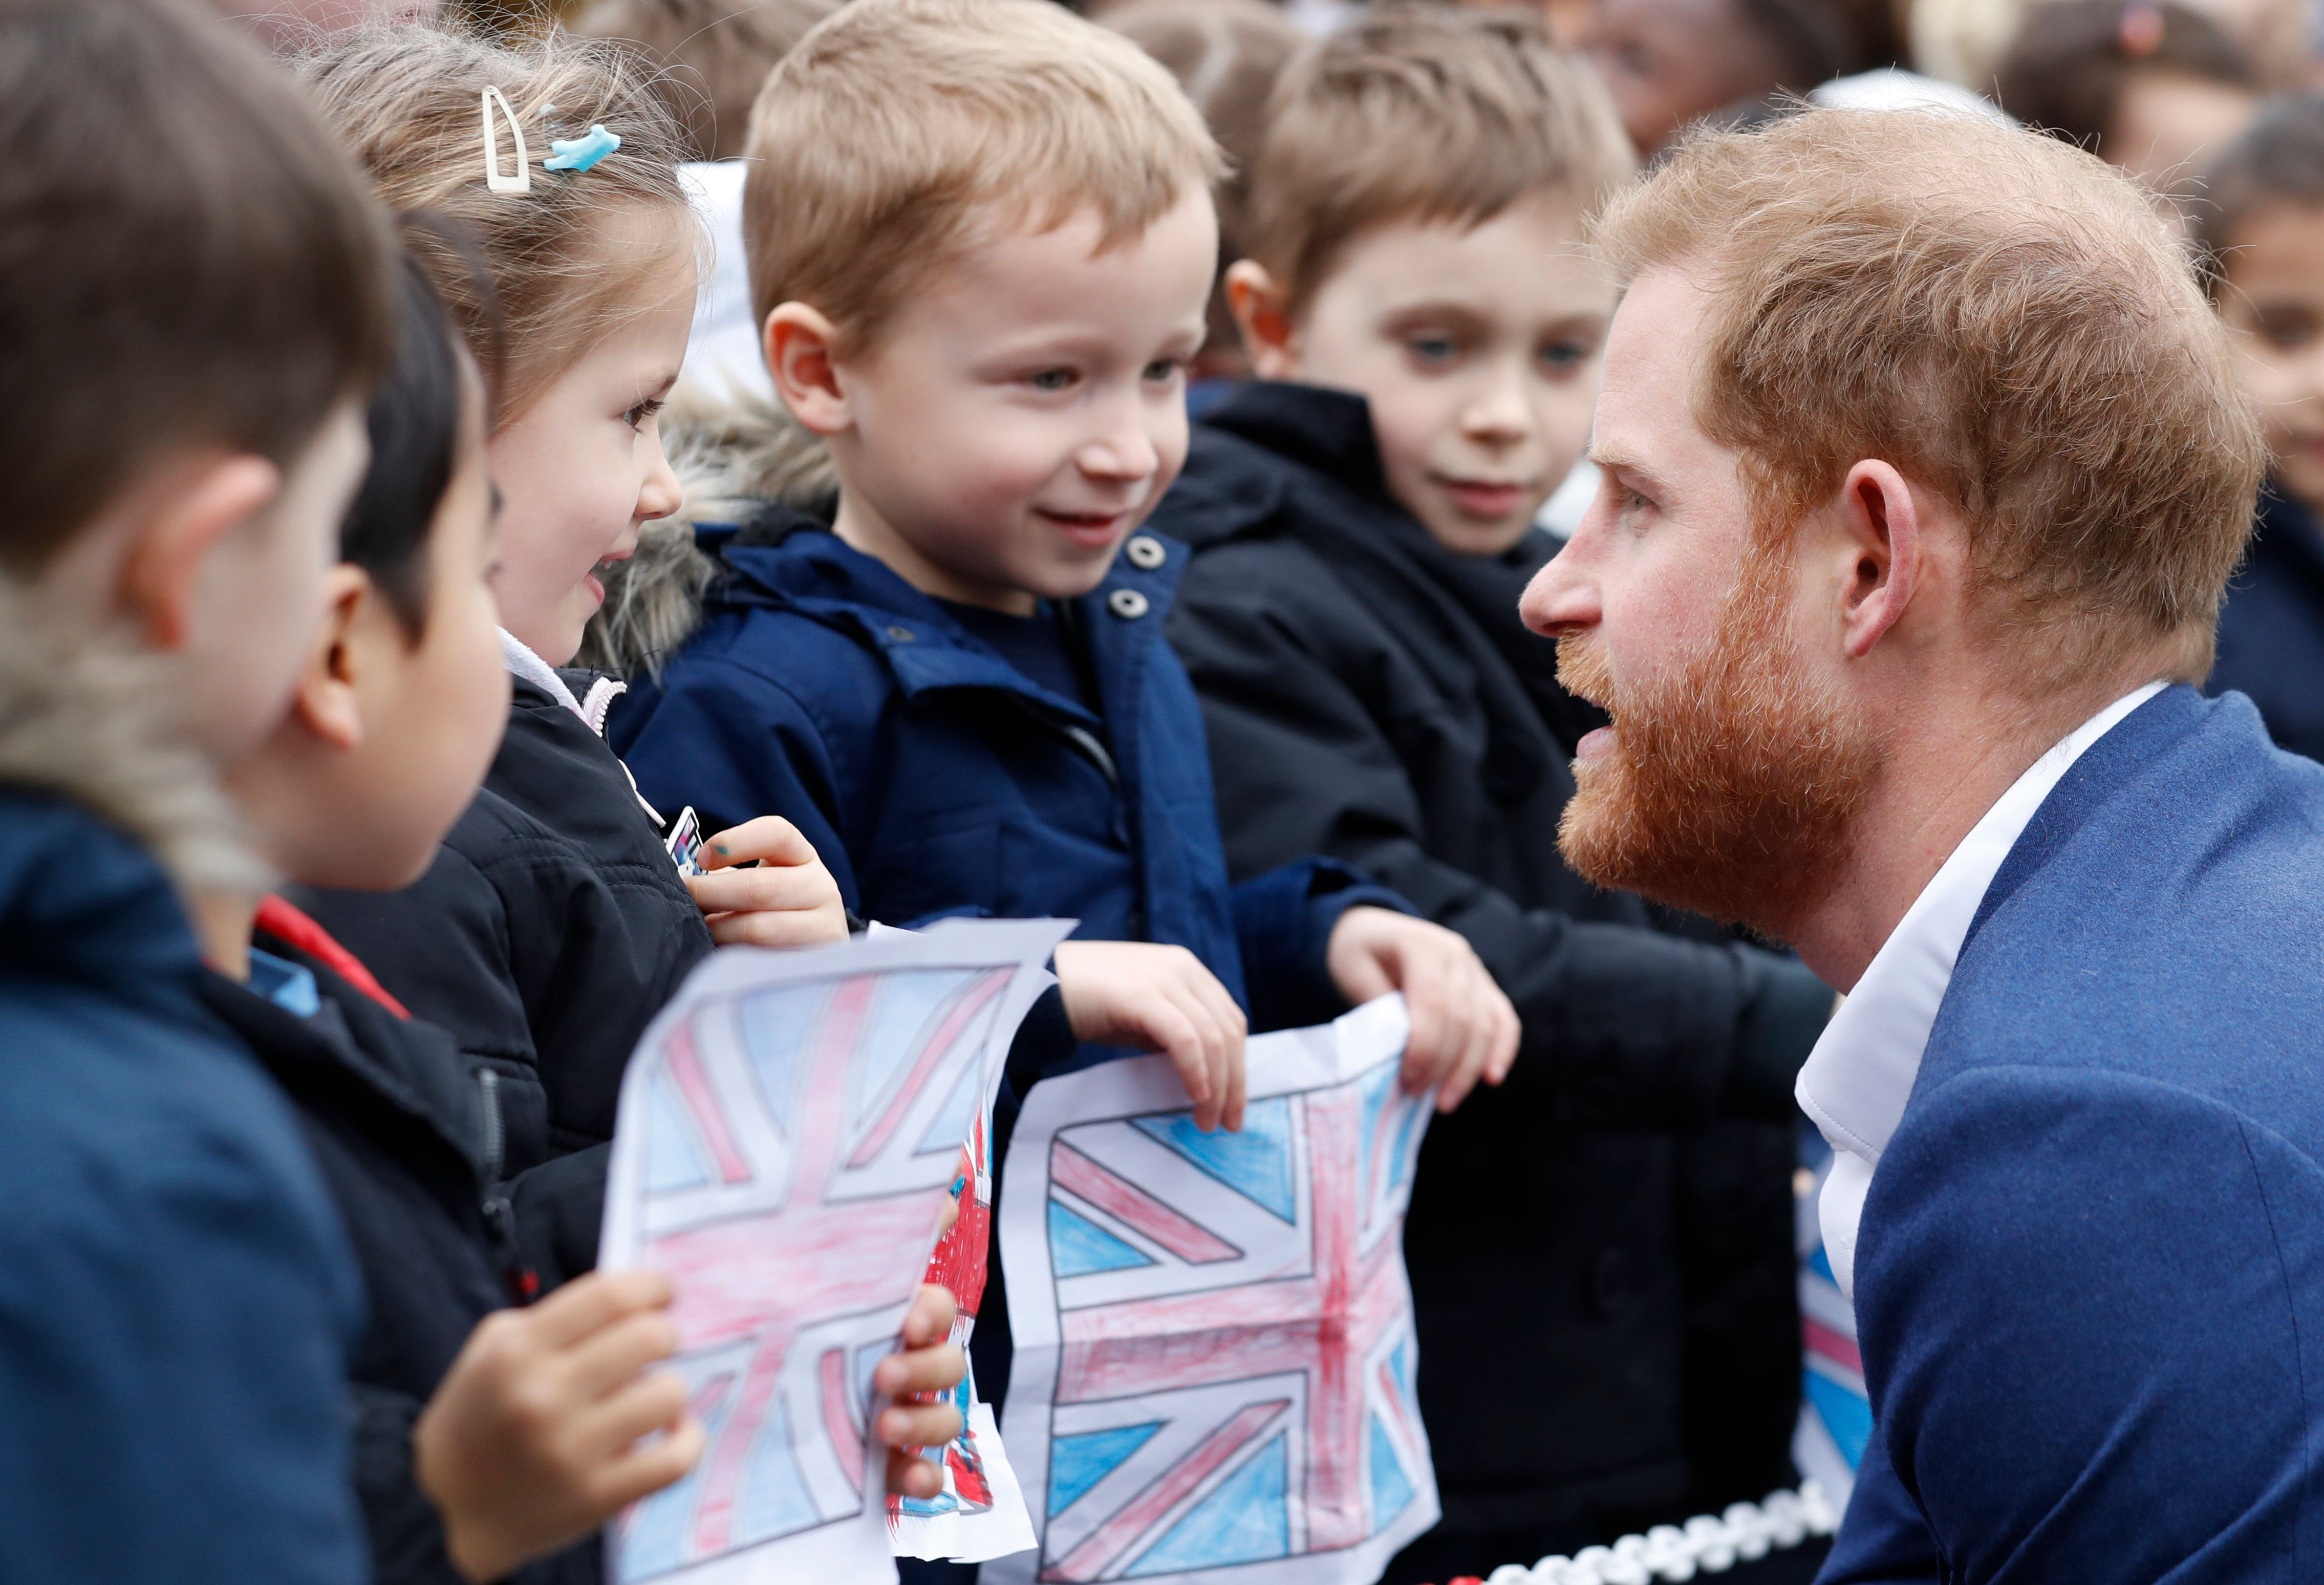 ACTON, ENGLAND - MARCH 20: Prince Harry, Duke of Sussex smiles as he talks to pupils at St Vincent's Catholic Primary School, after planting planting a tree from the Woodland Trust at St Vincent's Catholic Primary School on March 20, 2019 in Acton, England. (Photo by Alastair Grant - WPA Pool/Getty Images)